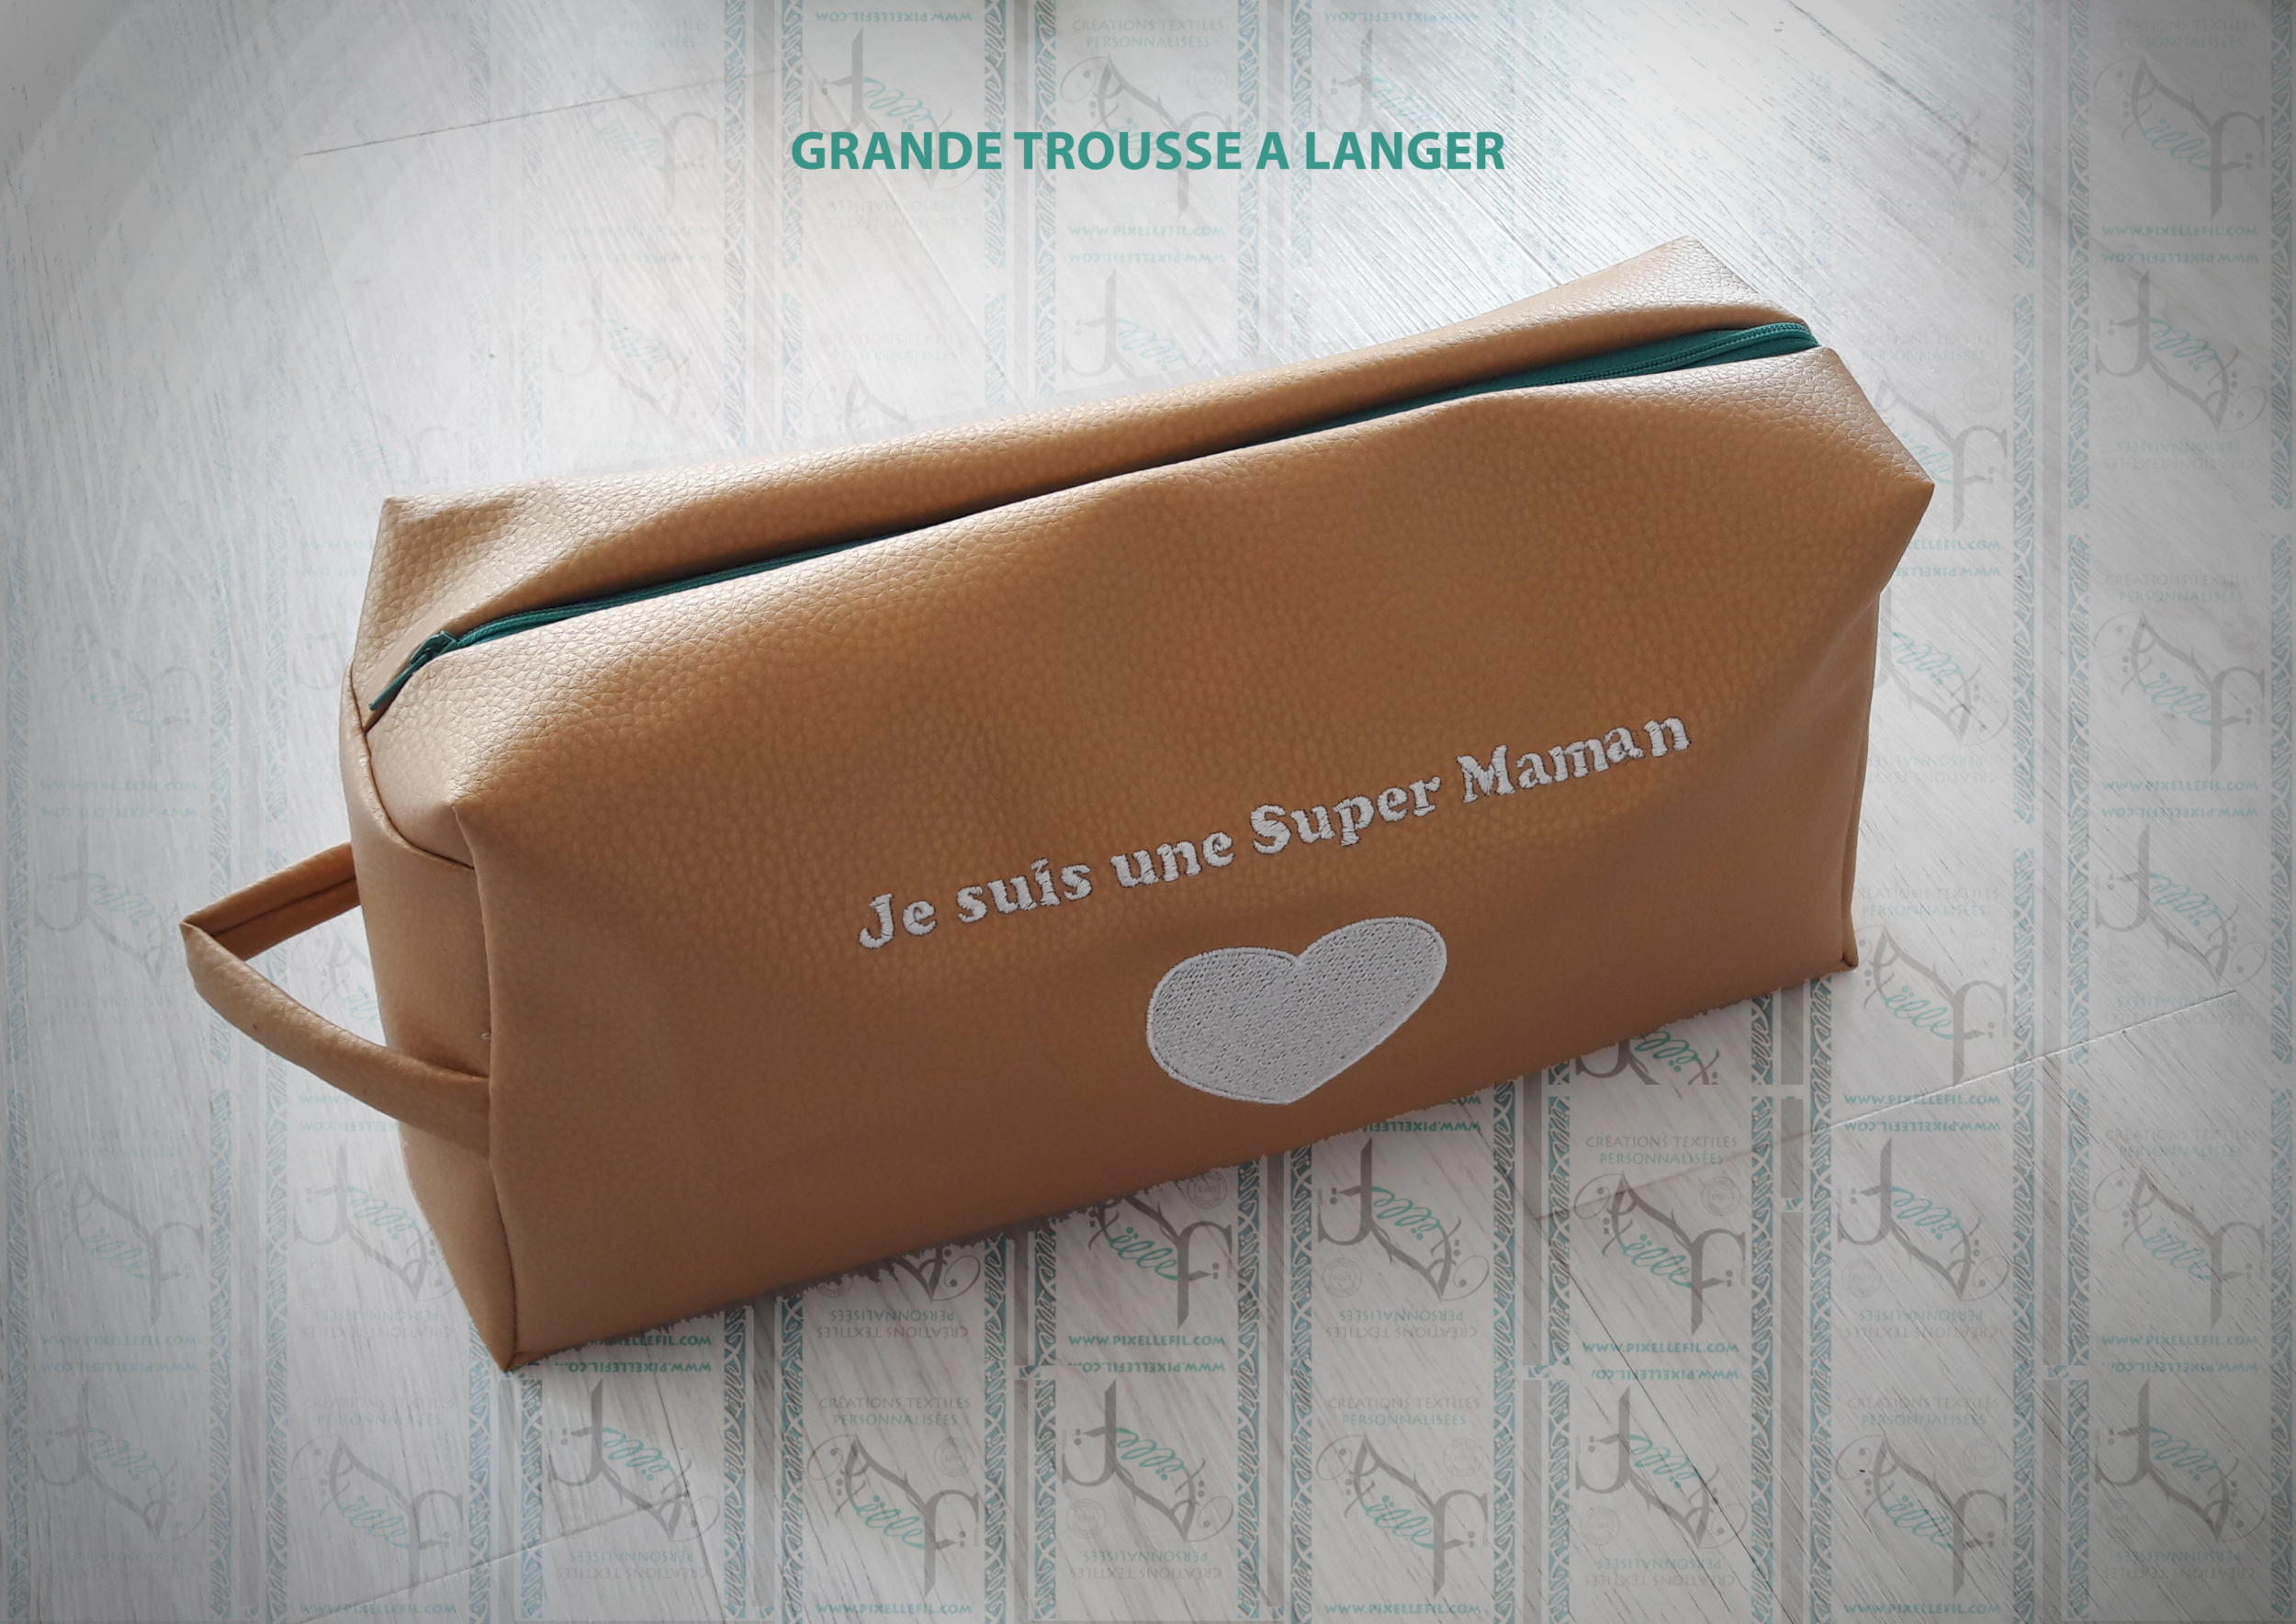 TROUSSE A LANGER PERSONNALISEE